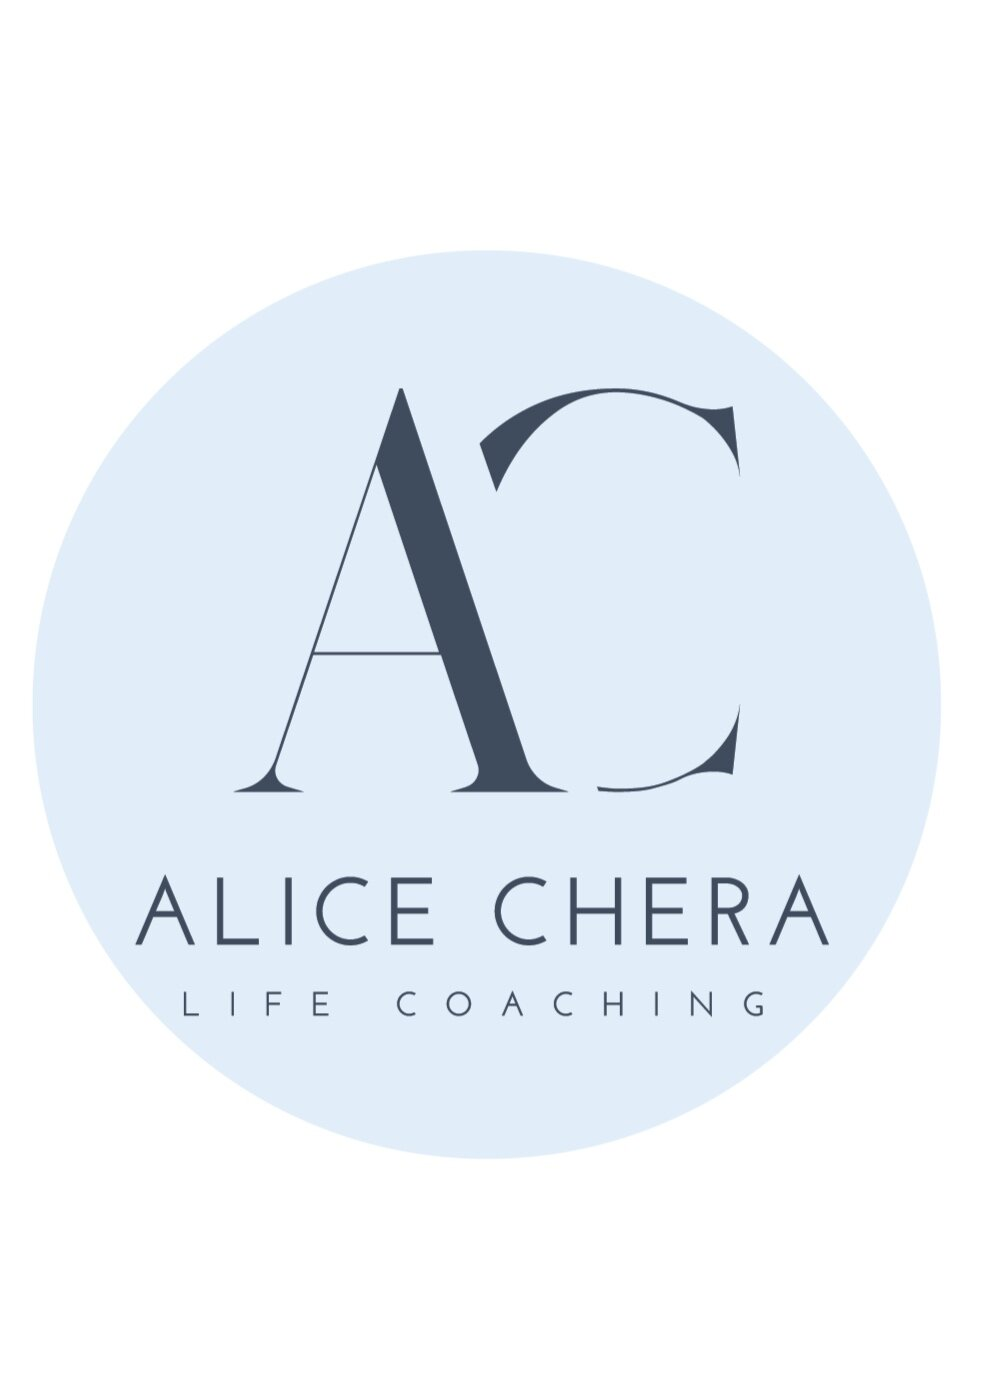 Alice Chera Life Coaching